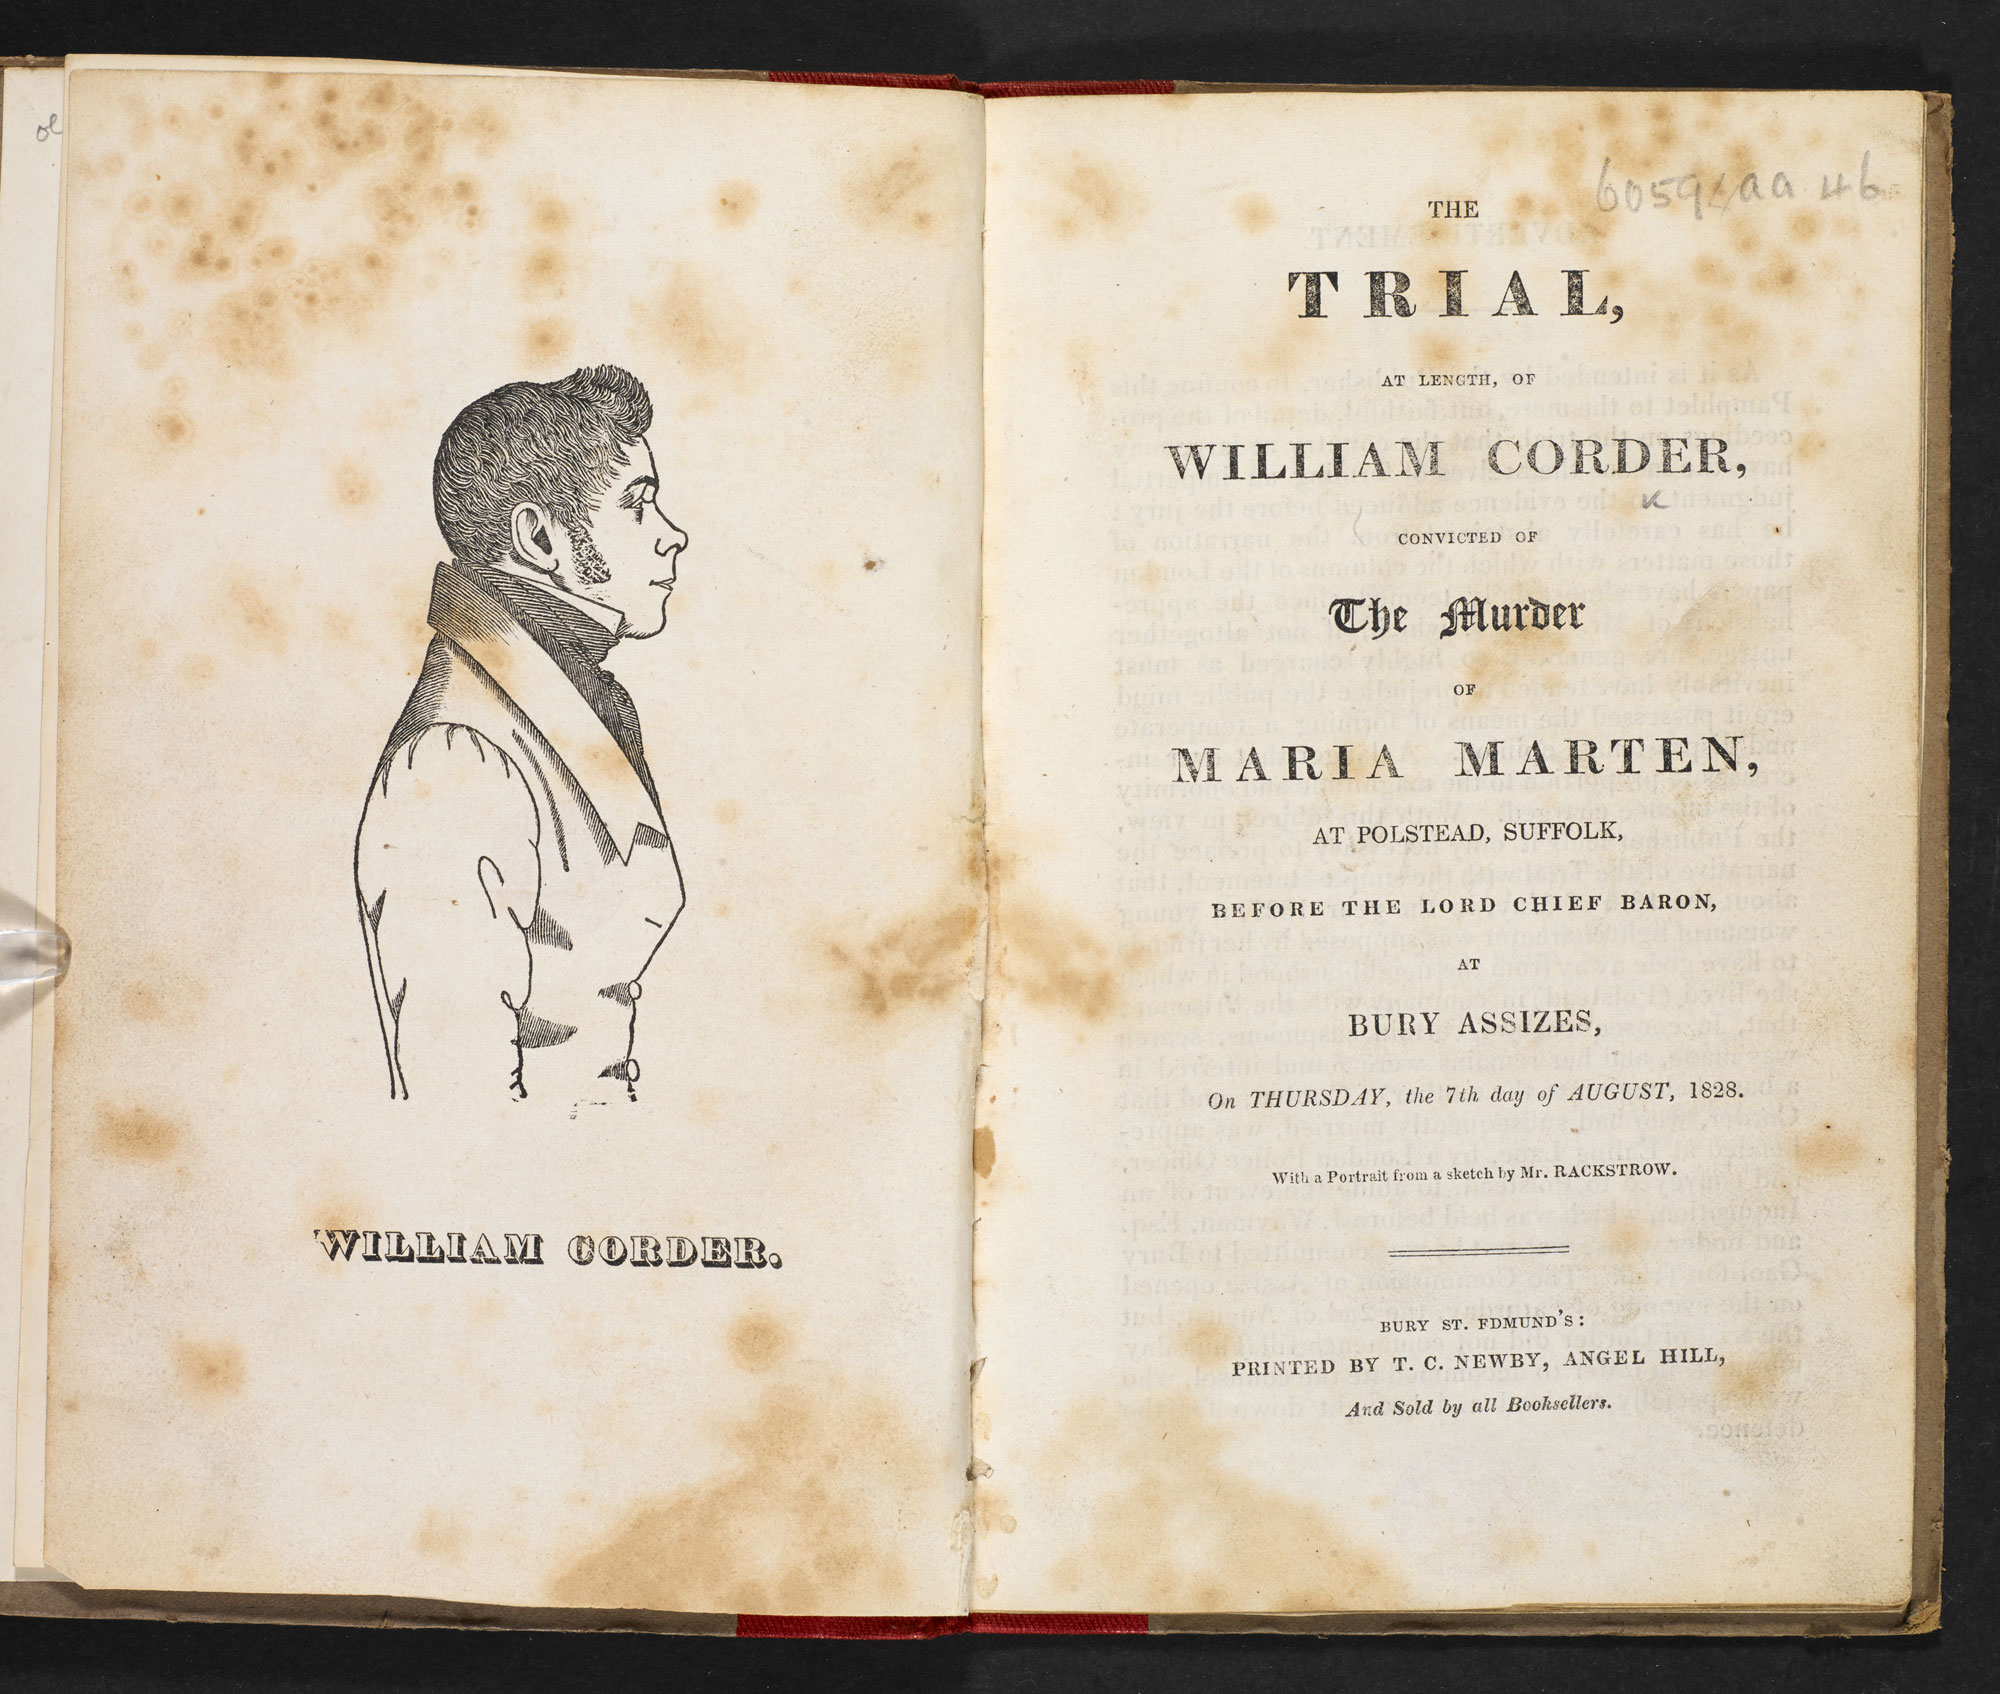 The Trial, at Length, of William Corder, convicted of the Murder of Maria Marten [page: frontispiece and title page]